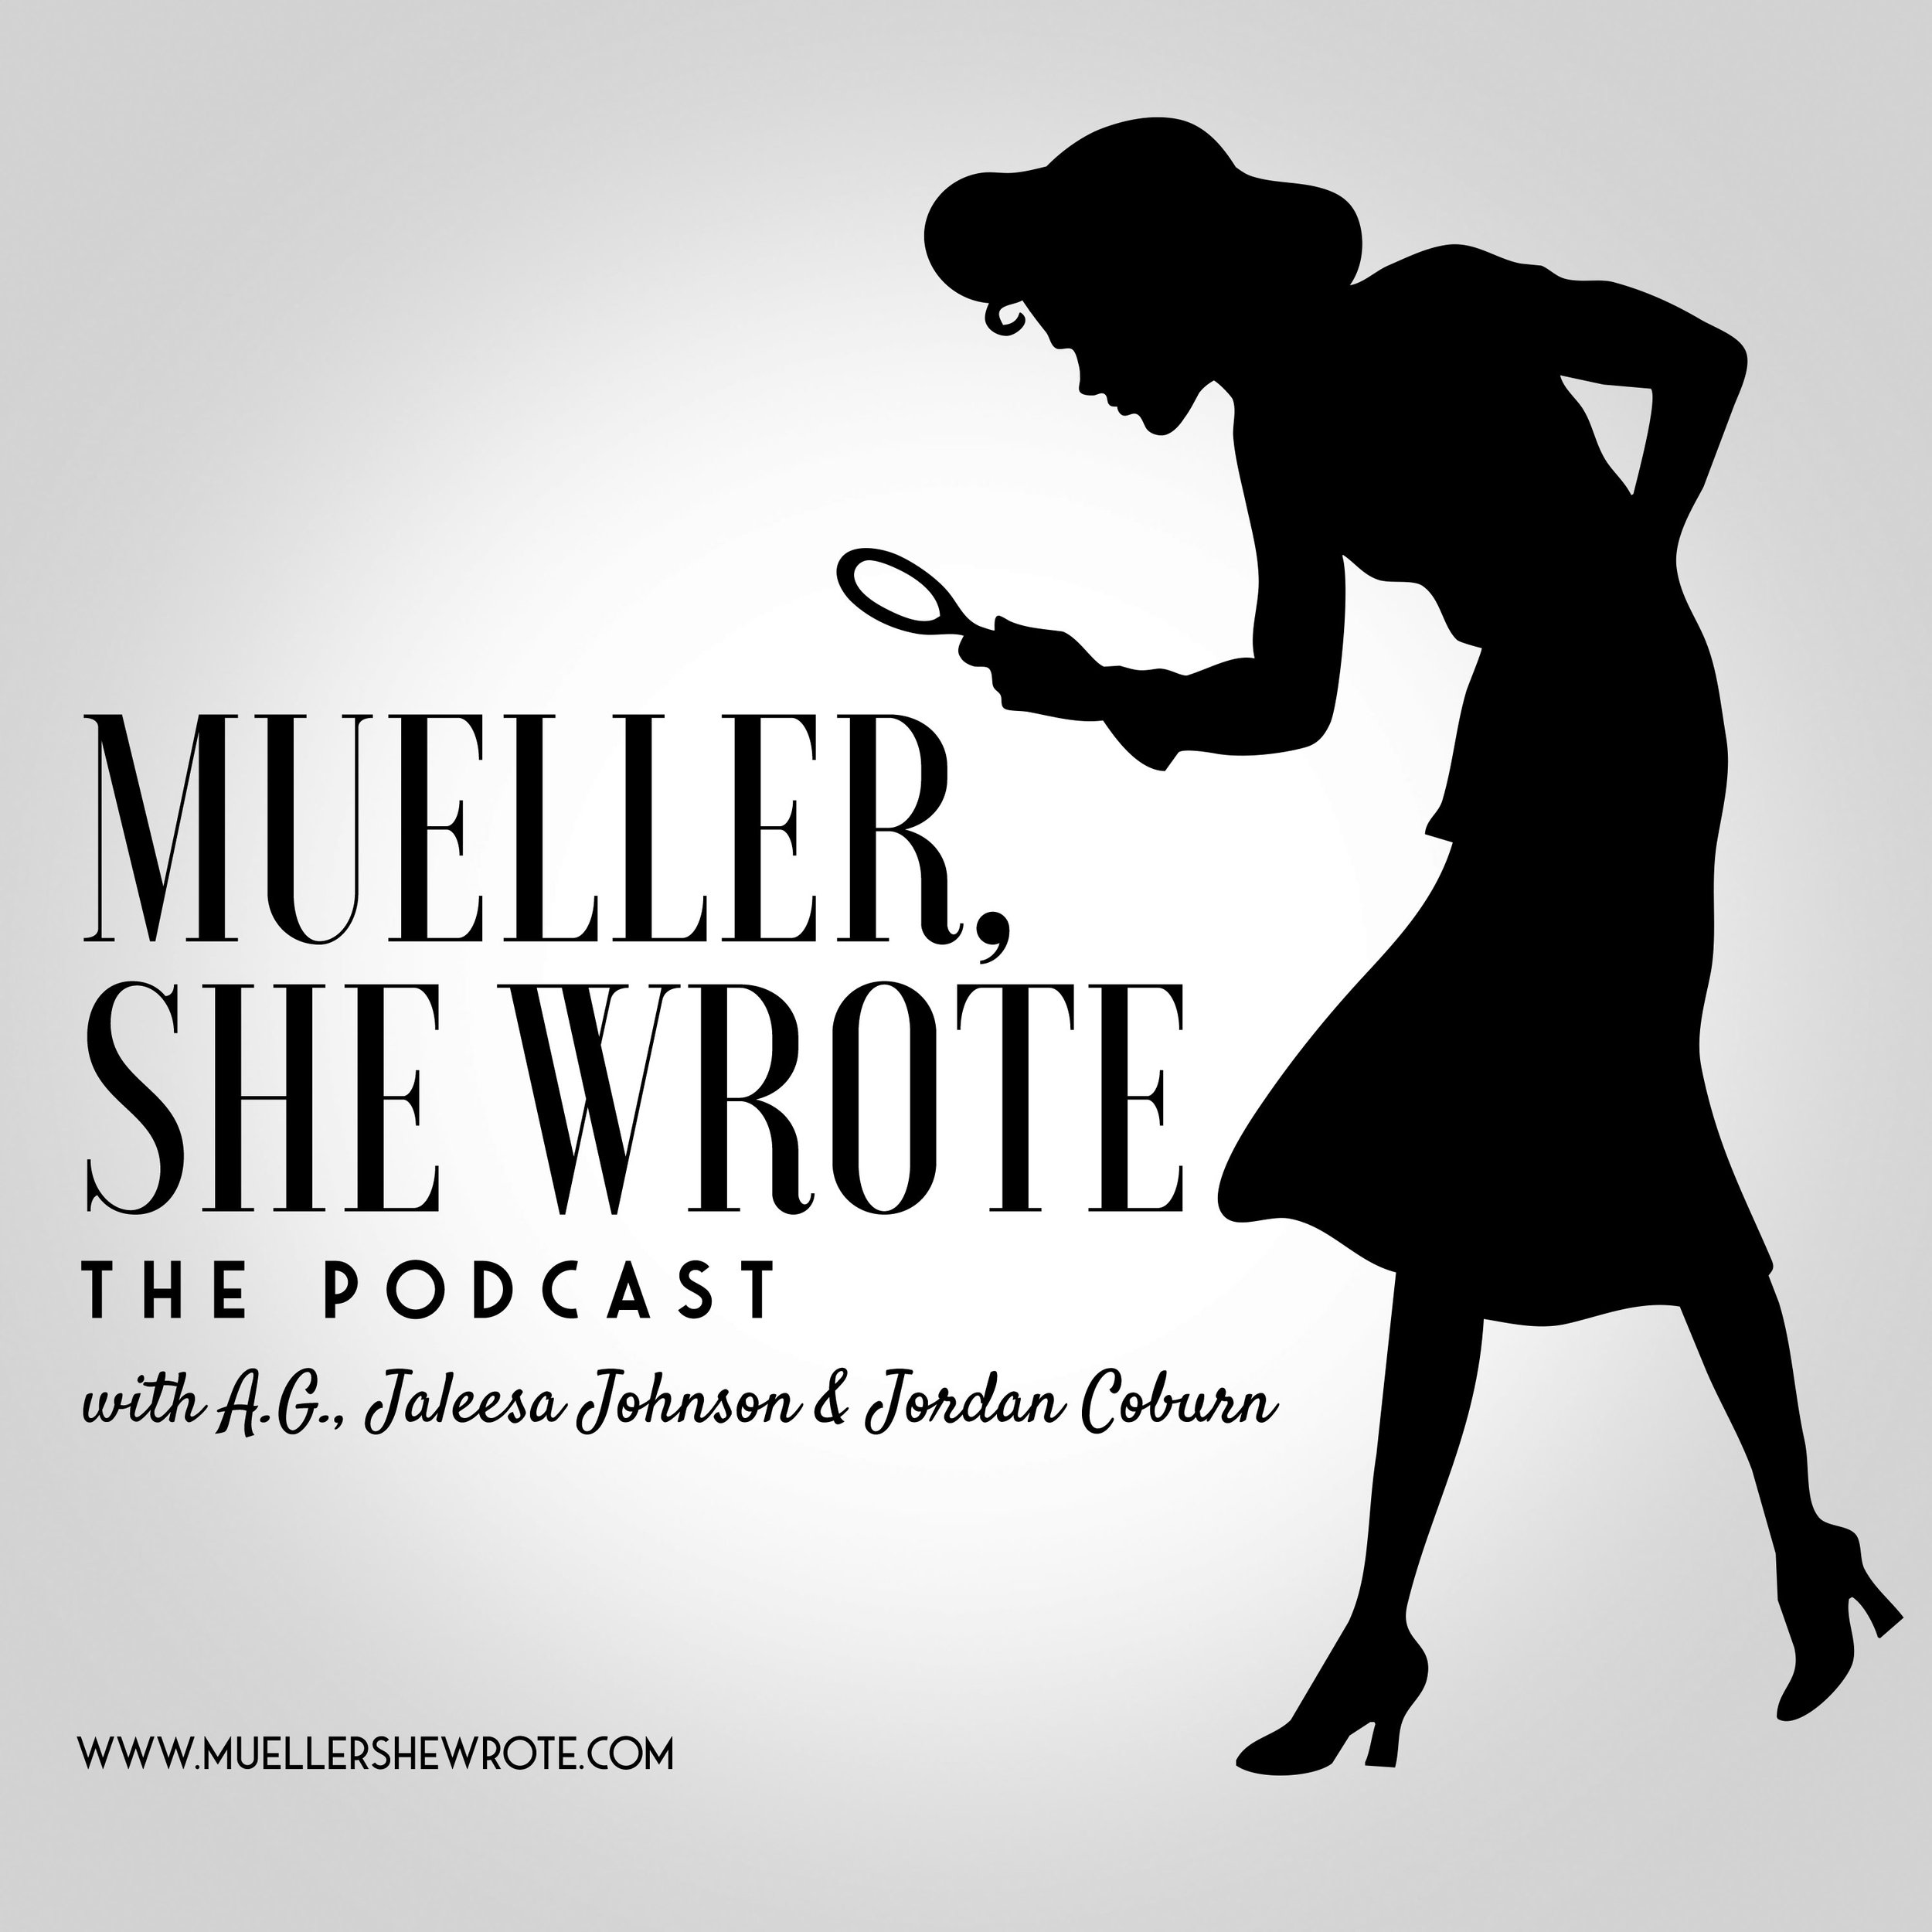 Mueller, She Wrote - July 17, 7:00pm @ World Cafe Live